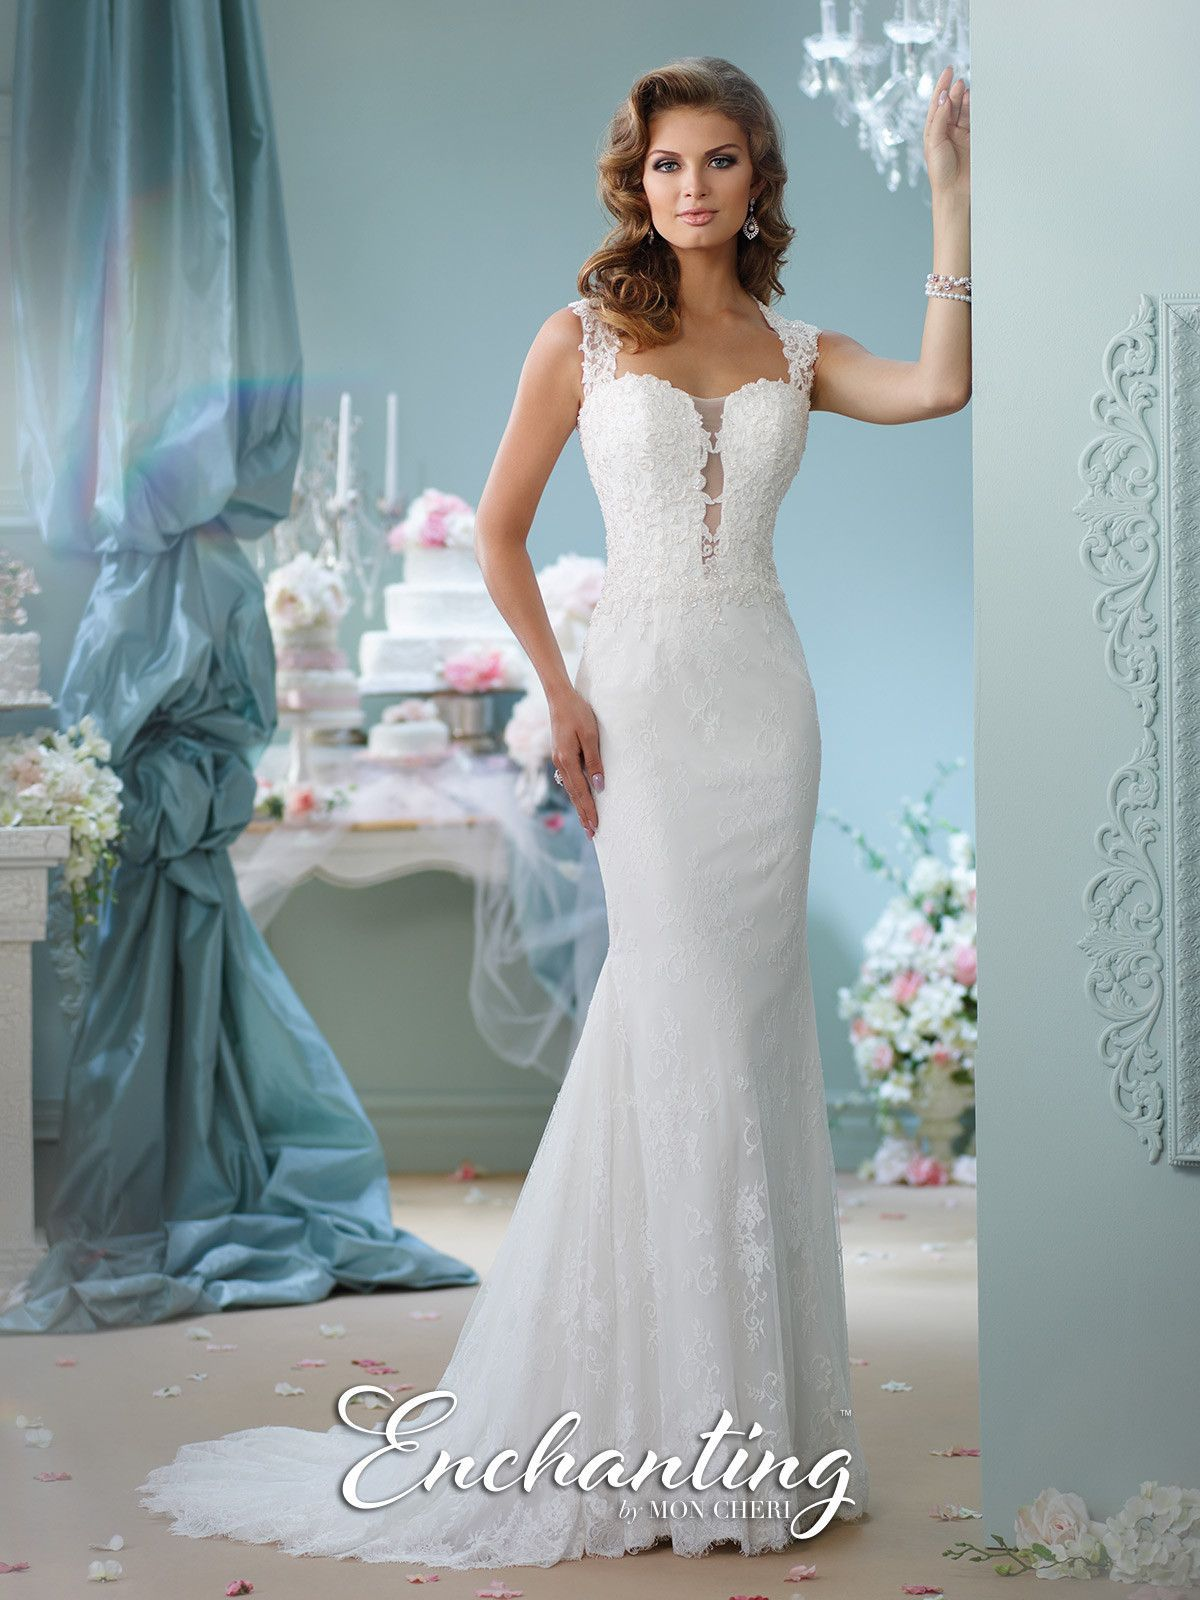 Enchanting - 116125 - All Dressed Up, Bridal Gown